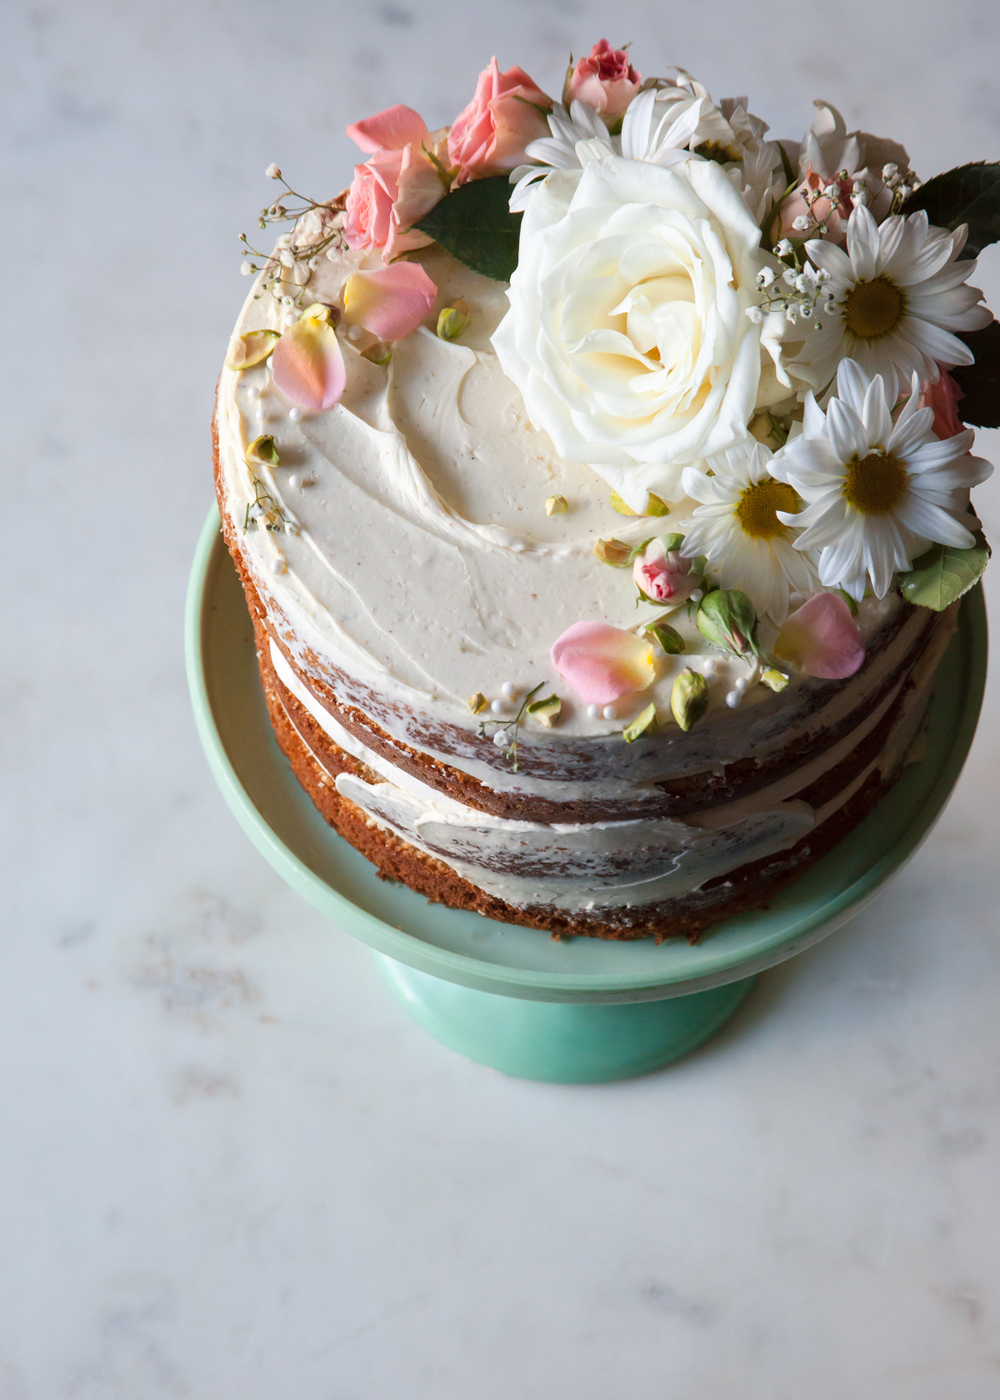 Cake Design How To Make : How to Make a Naked Cake   Style Sweet CA